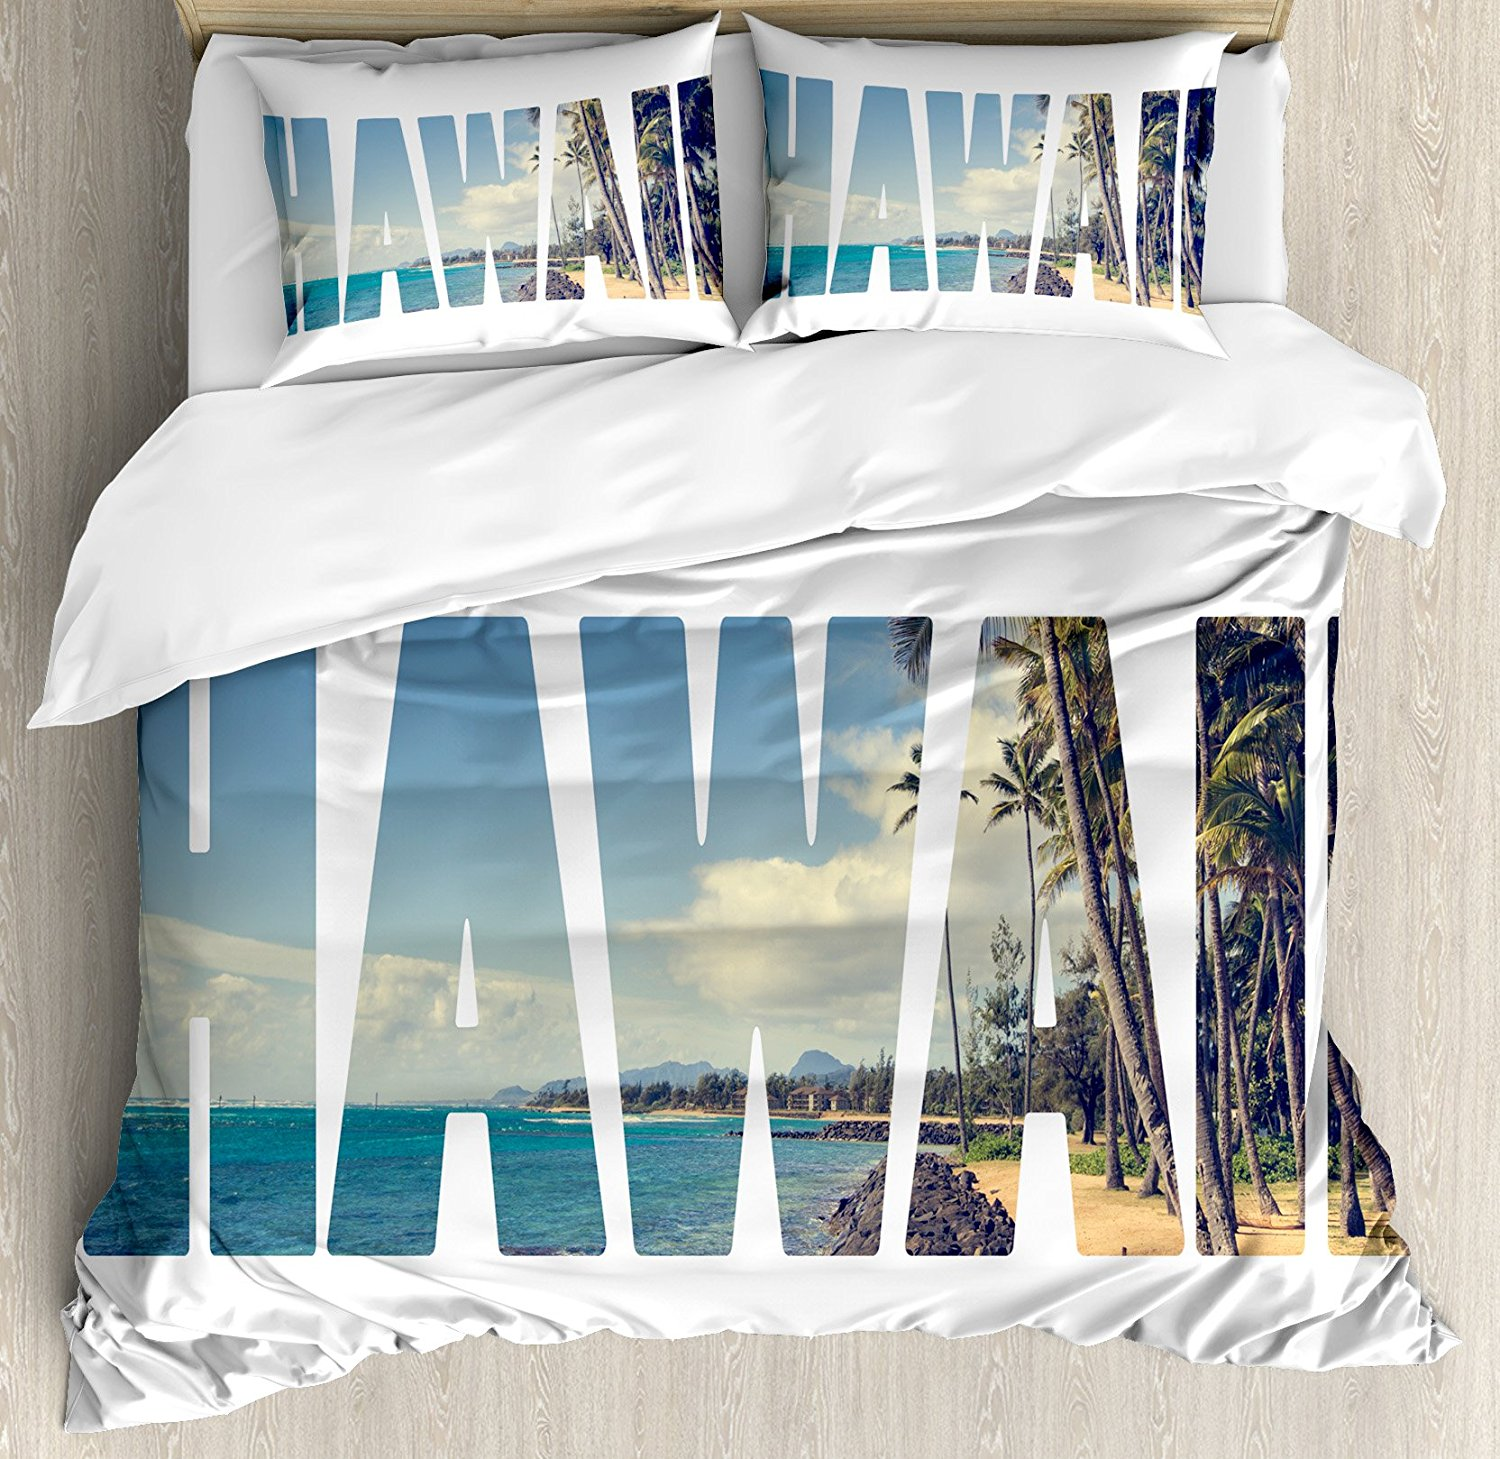 Hawaiian Duvet Cover Set Word Hawaii with Tropical Island Photo Exotic Popular Places Palm Forest , 4 Piece Bedding Set